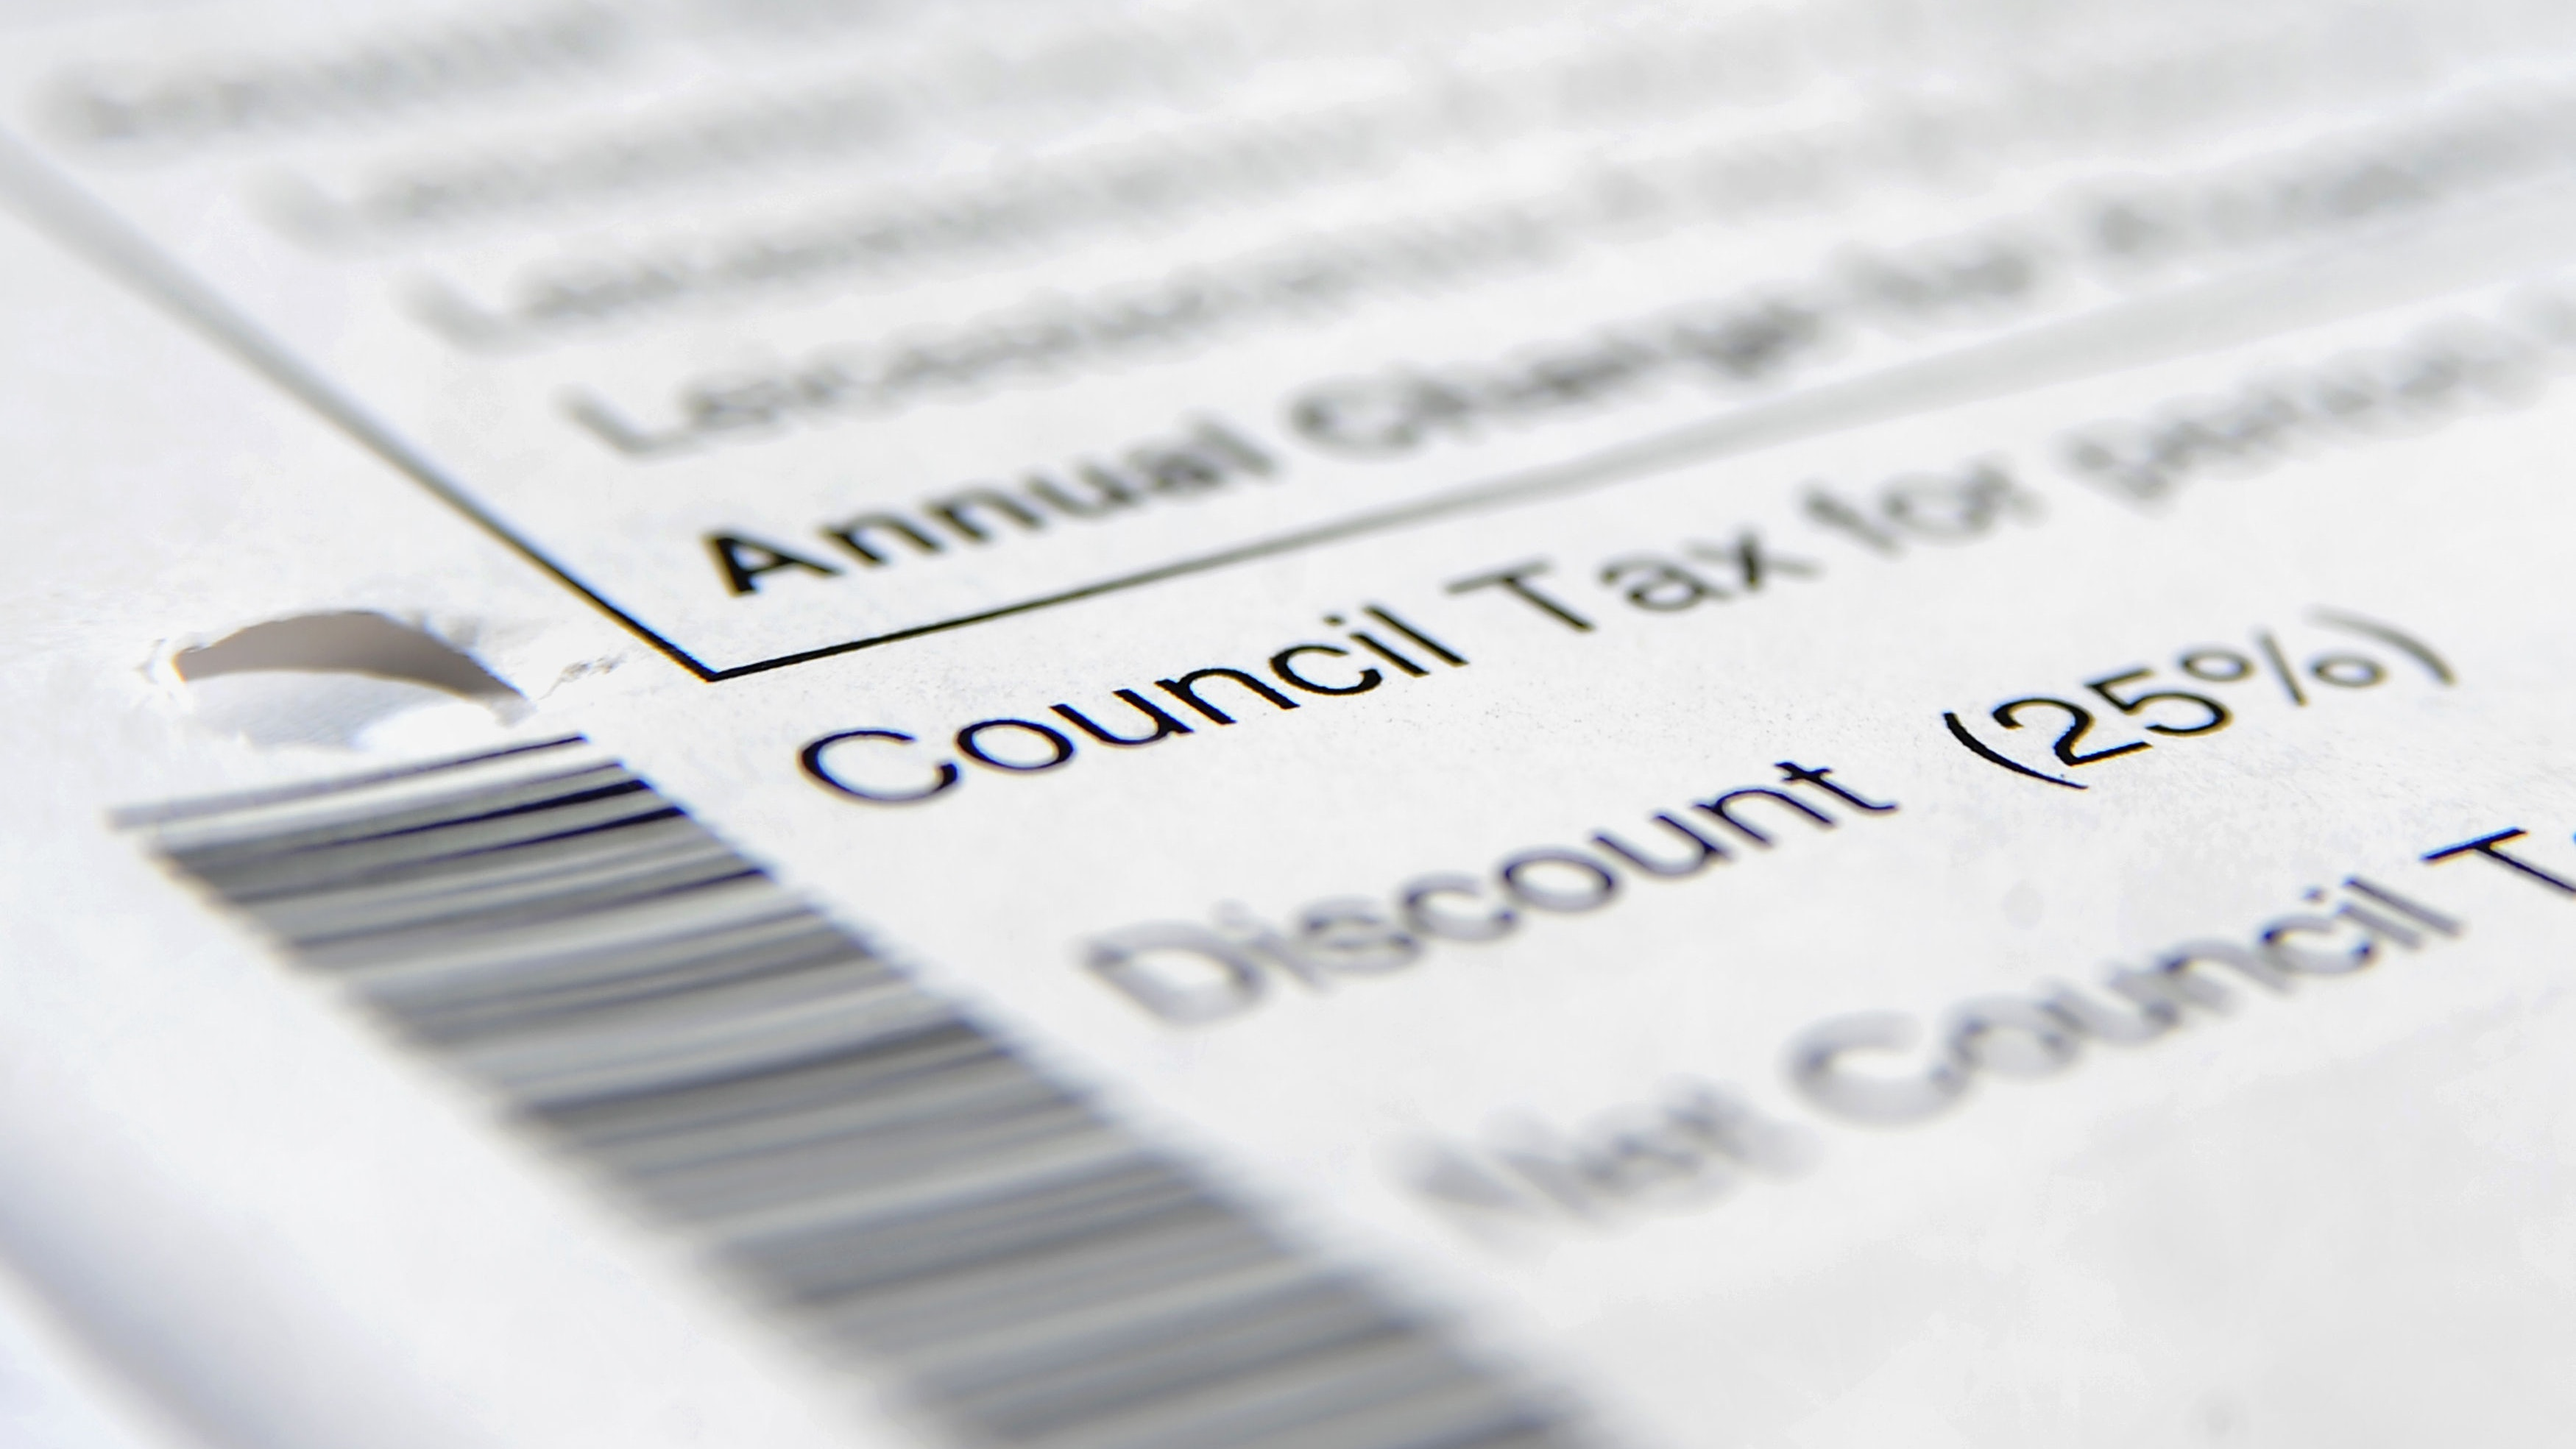 Average council tax set to go up £100 'across England', says survey